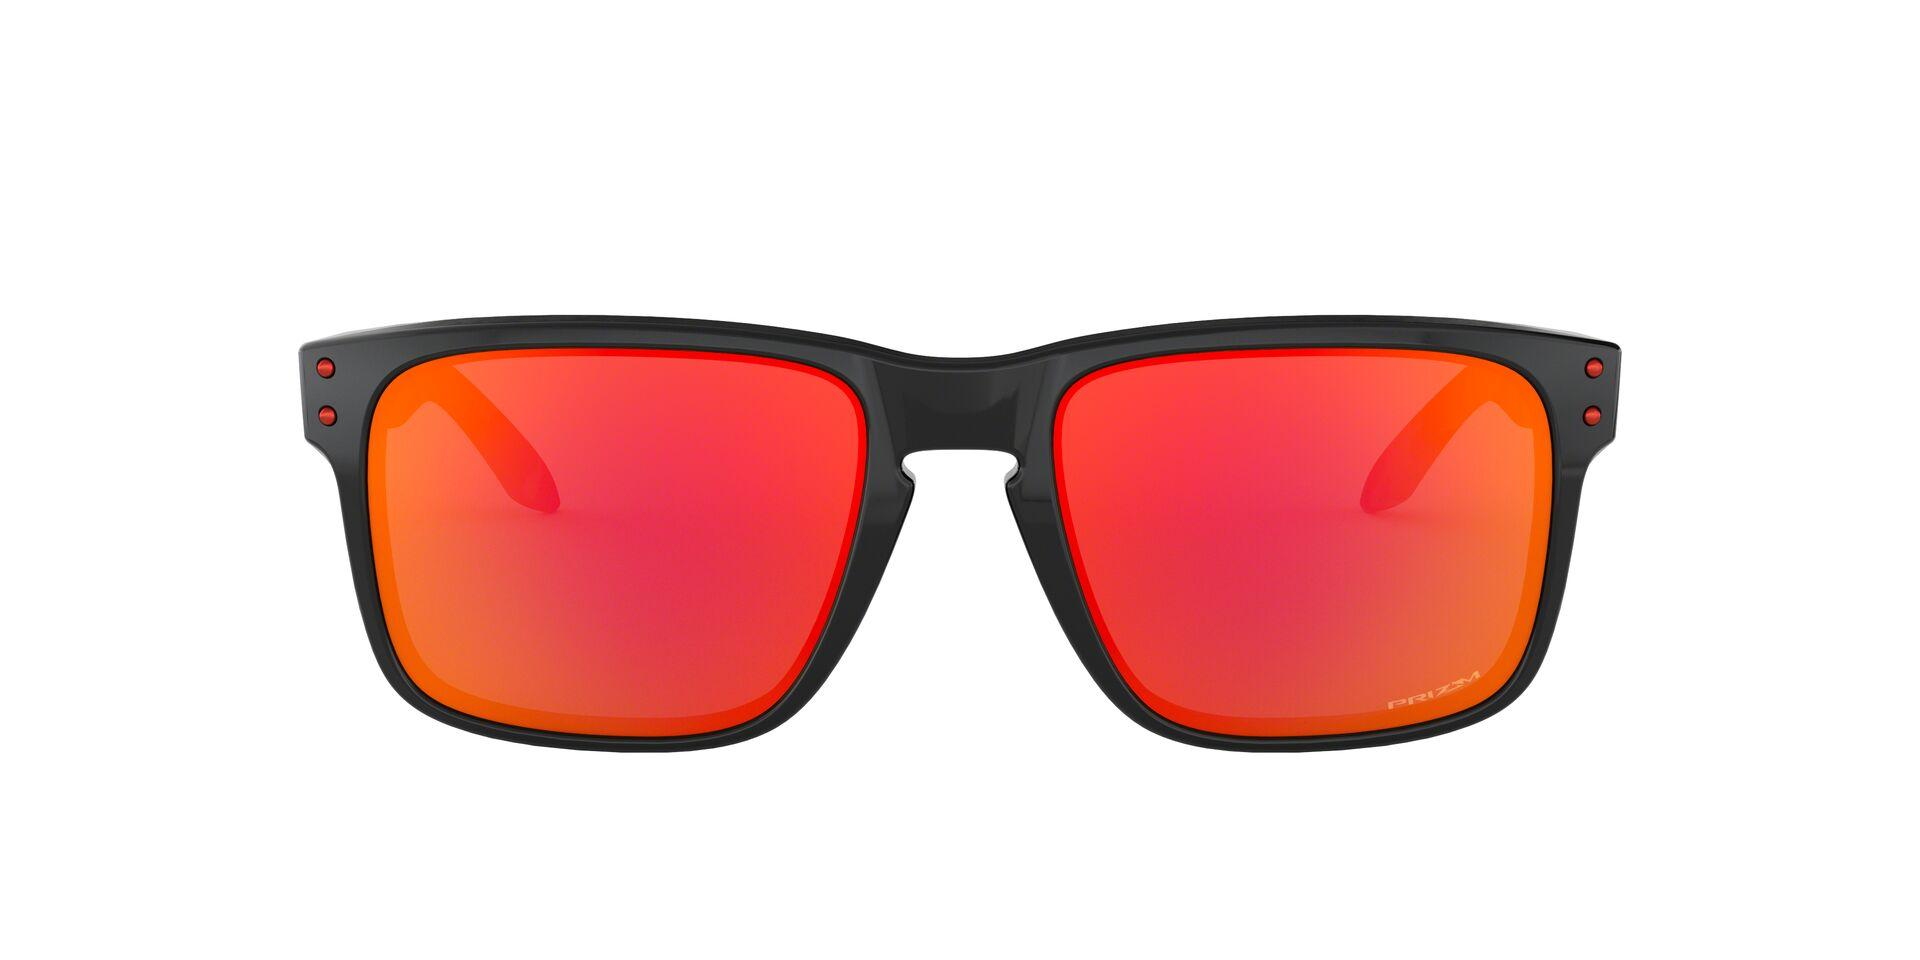 512569649d Oakley Philippines - Oakley Sunglasses for sale - prices   reviews ...